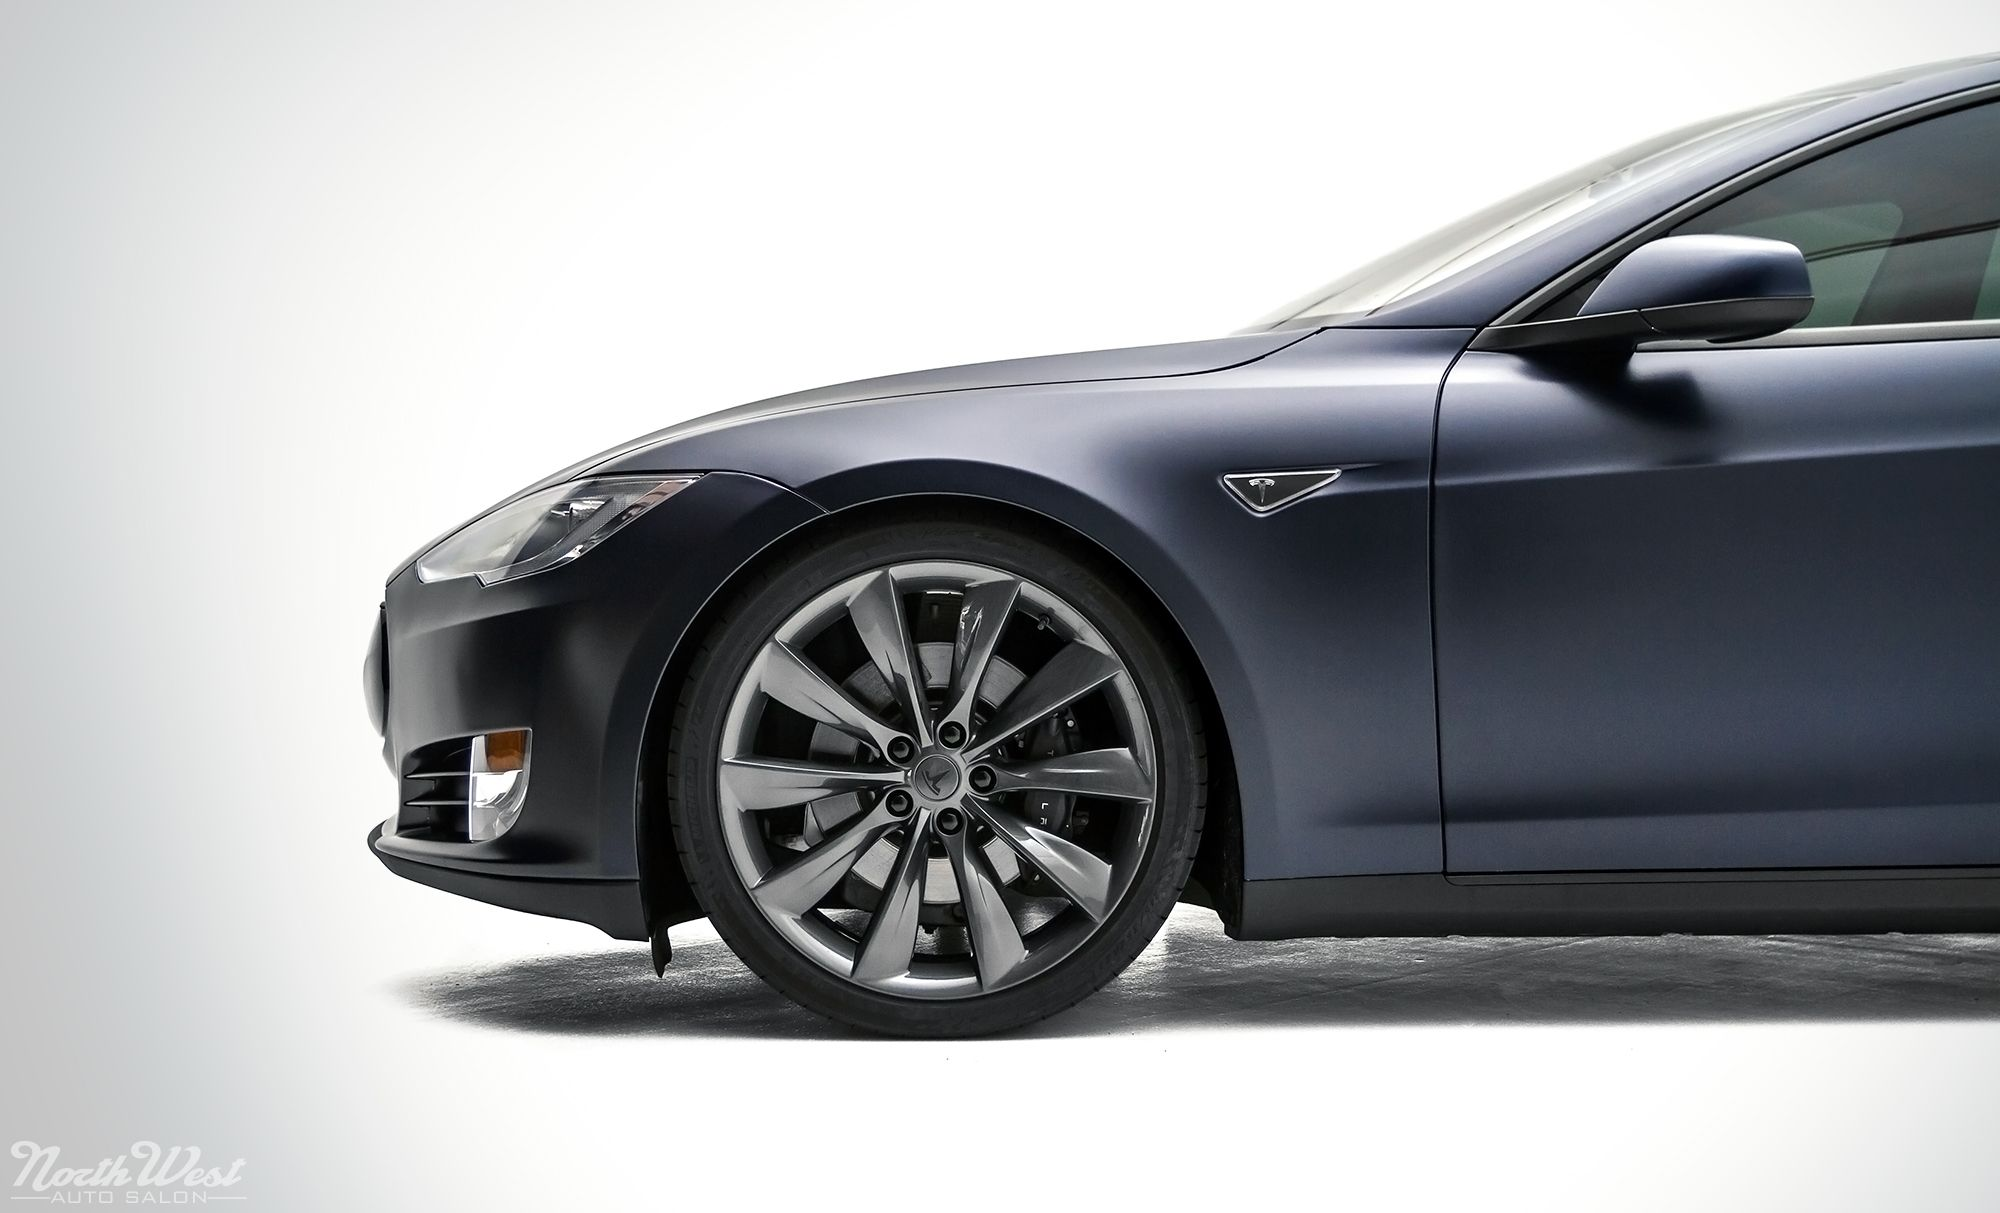 Stealth Mode Activate Tesla Model S wrapped in Satin XPEL